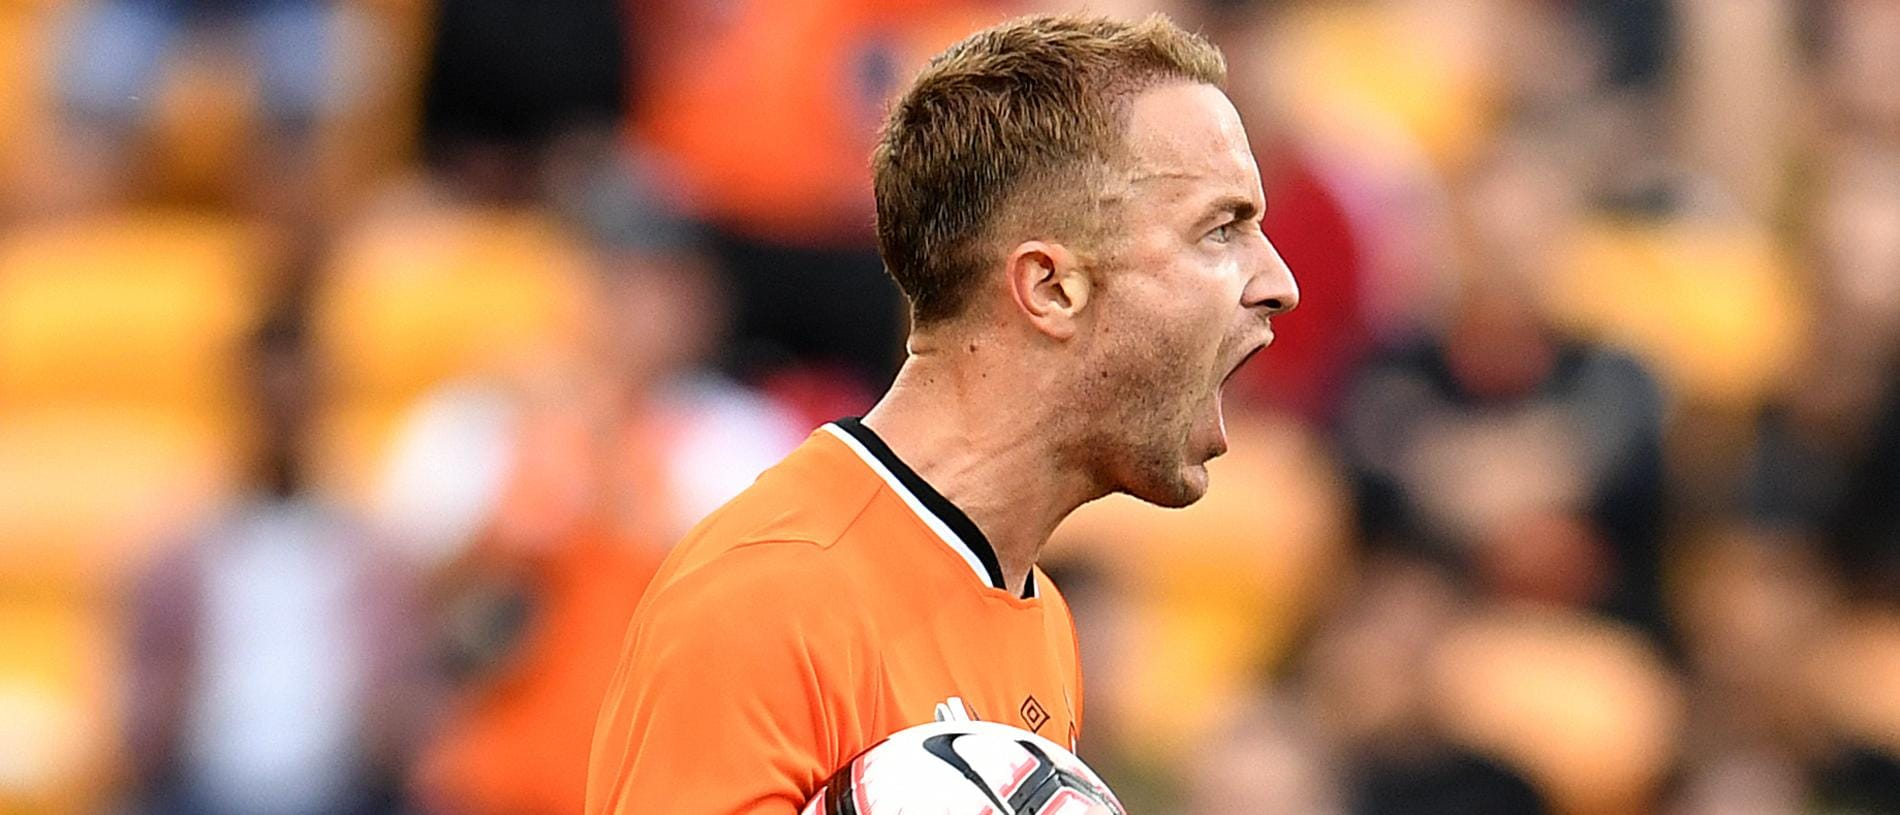 Adam Taggart of the Roar celebrates scoring a goal which was later disallowed during the Round 1 A-League match between the Brisbane Roar and the Central Coast Mariners at Suncorp Stadium in Brisbane, Sunday, October 21, 2018. (AAP Image/Dan Peled) NO ARCHIVING, EDITORIAL USE ONLY